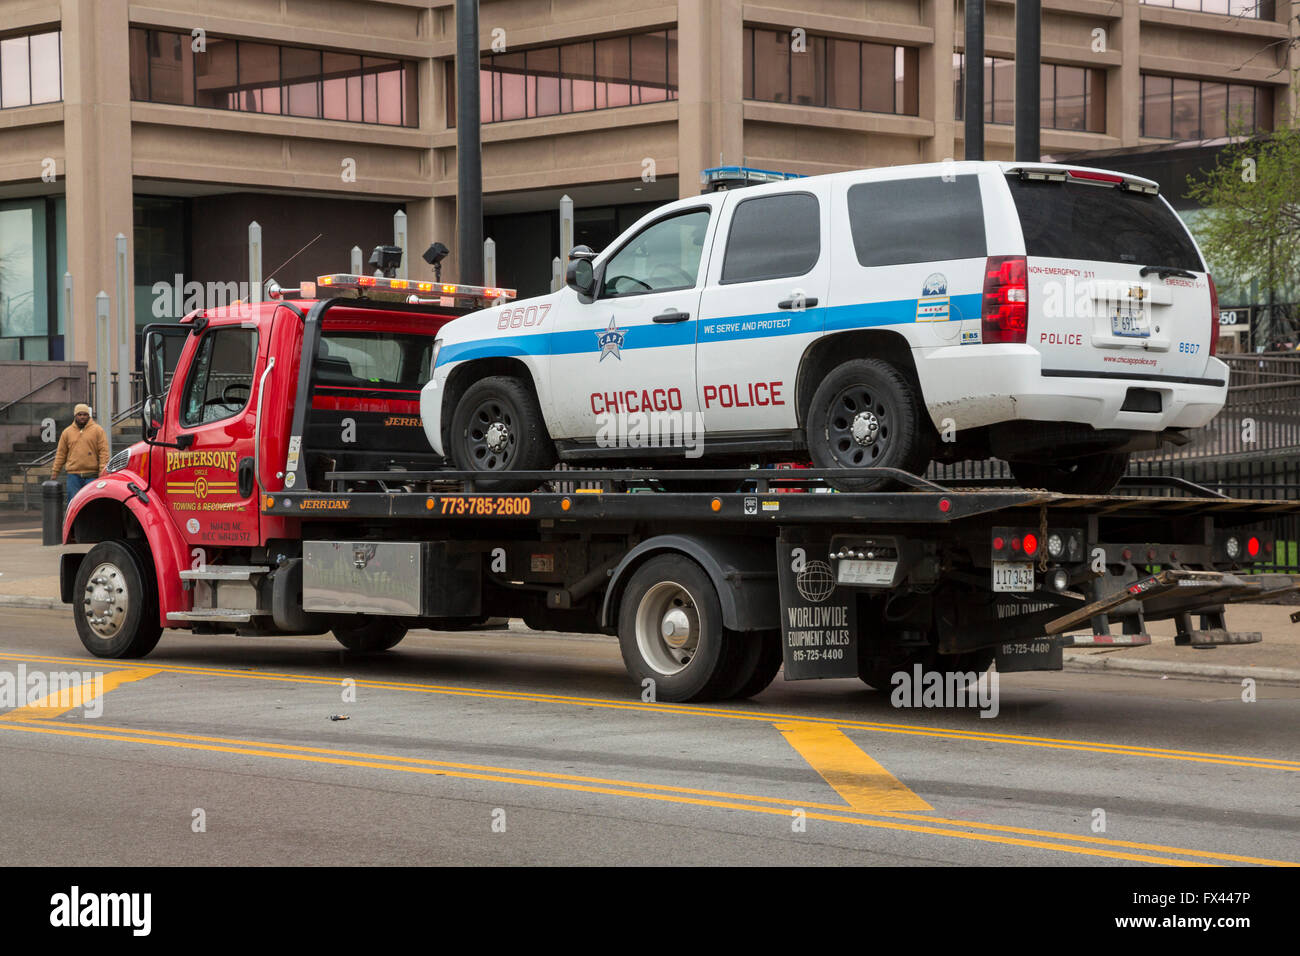 Chicago illinois a chicago police car on a tow truck stock image